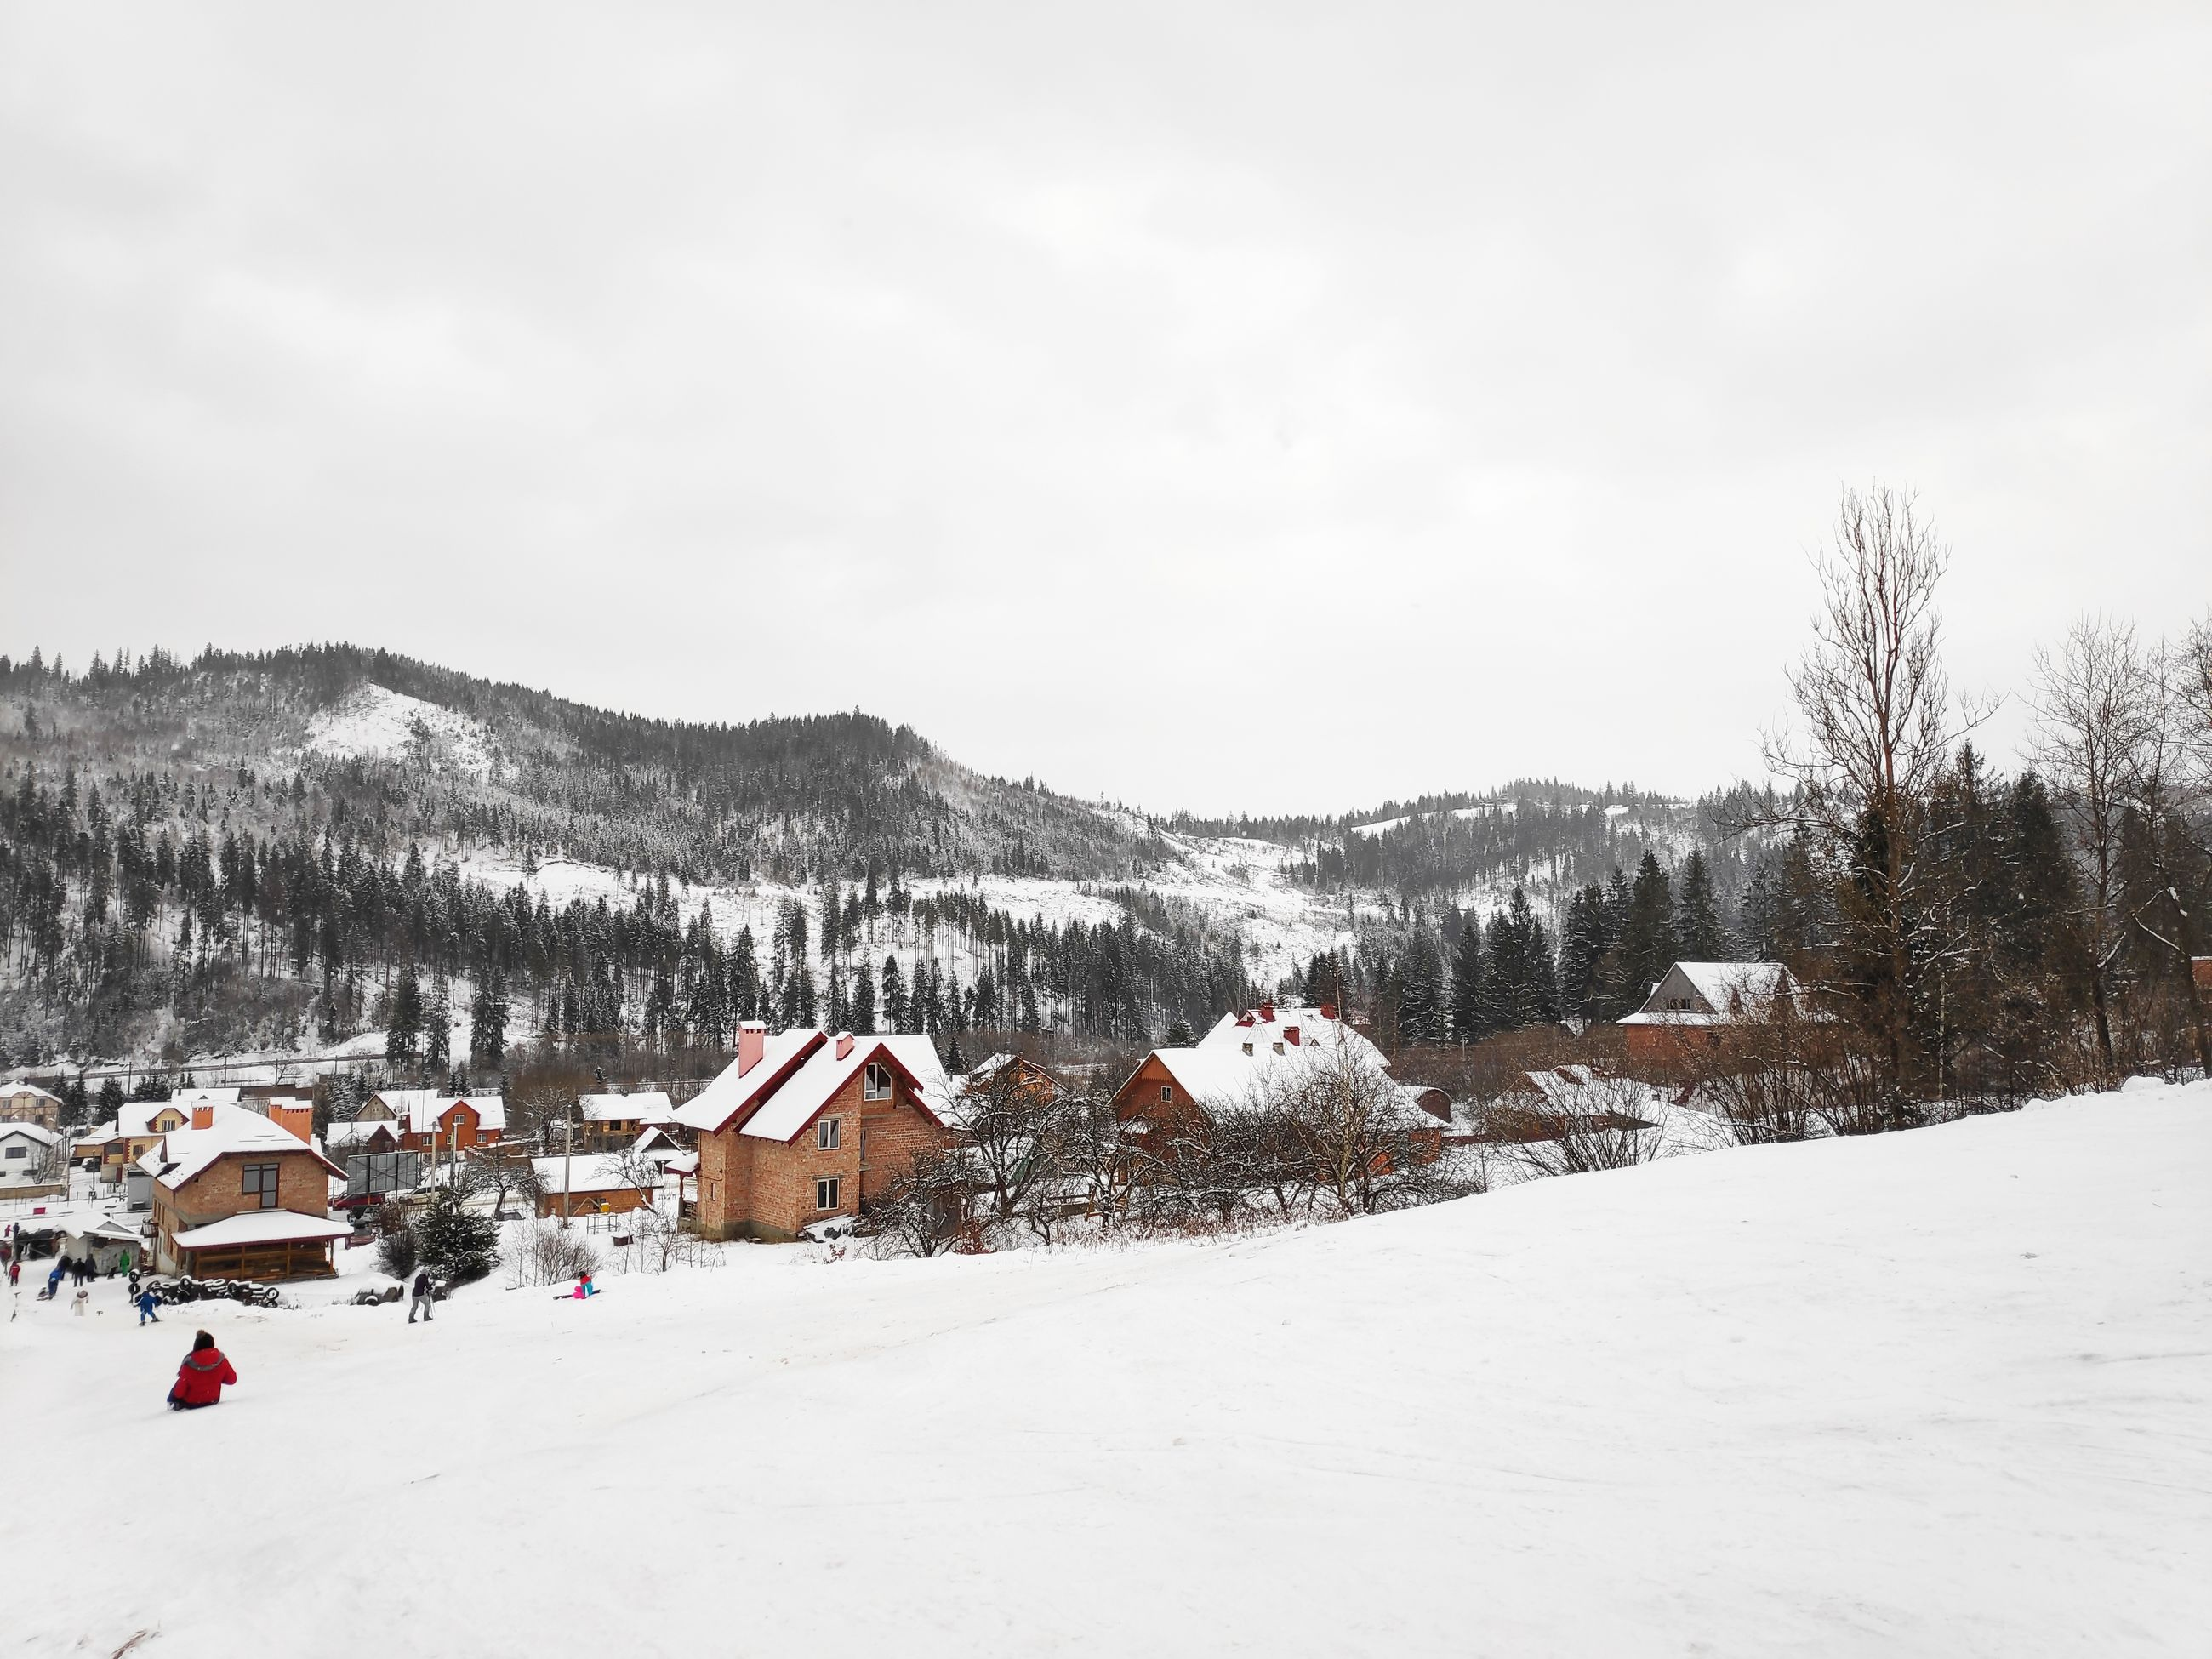 winter, snow, cold temperature, architecture, building exterior, sky, building, built structure, tree, house, nature, landscape, plant, field, scenics - nature, day, environment, mountain, cloud - sky, outdoors, no people, cottage, snowcapped mountain